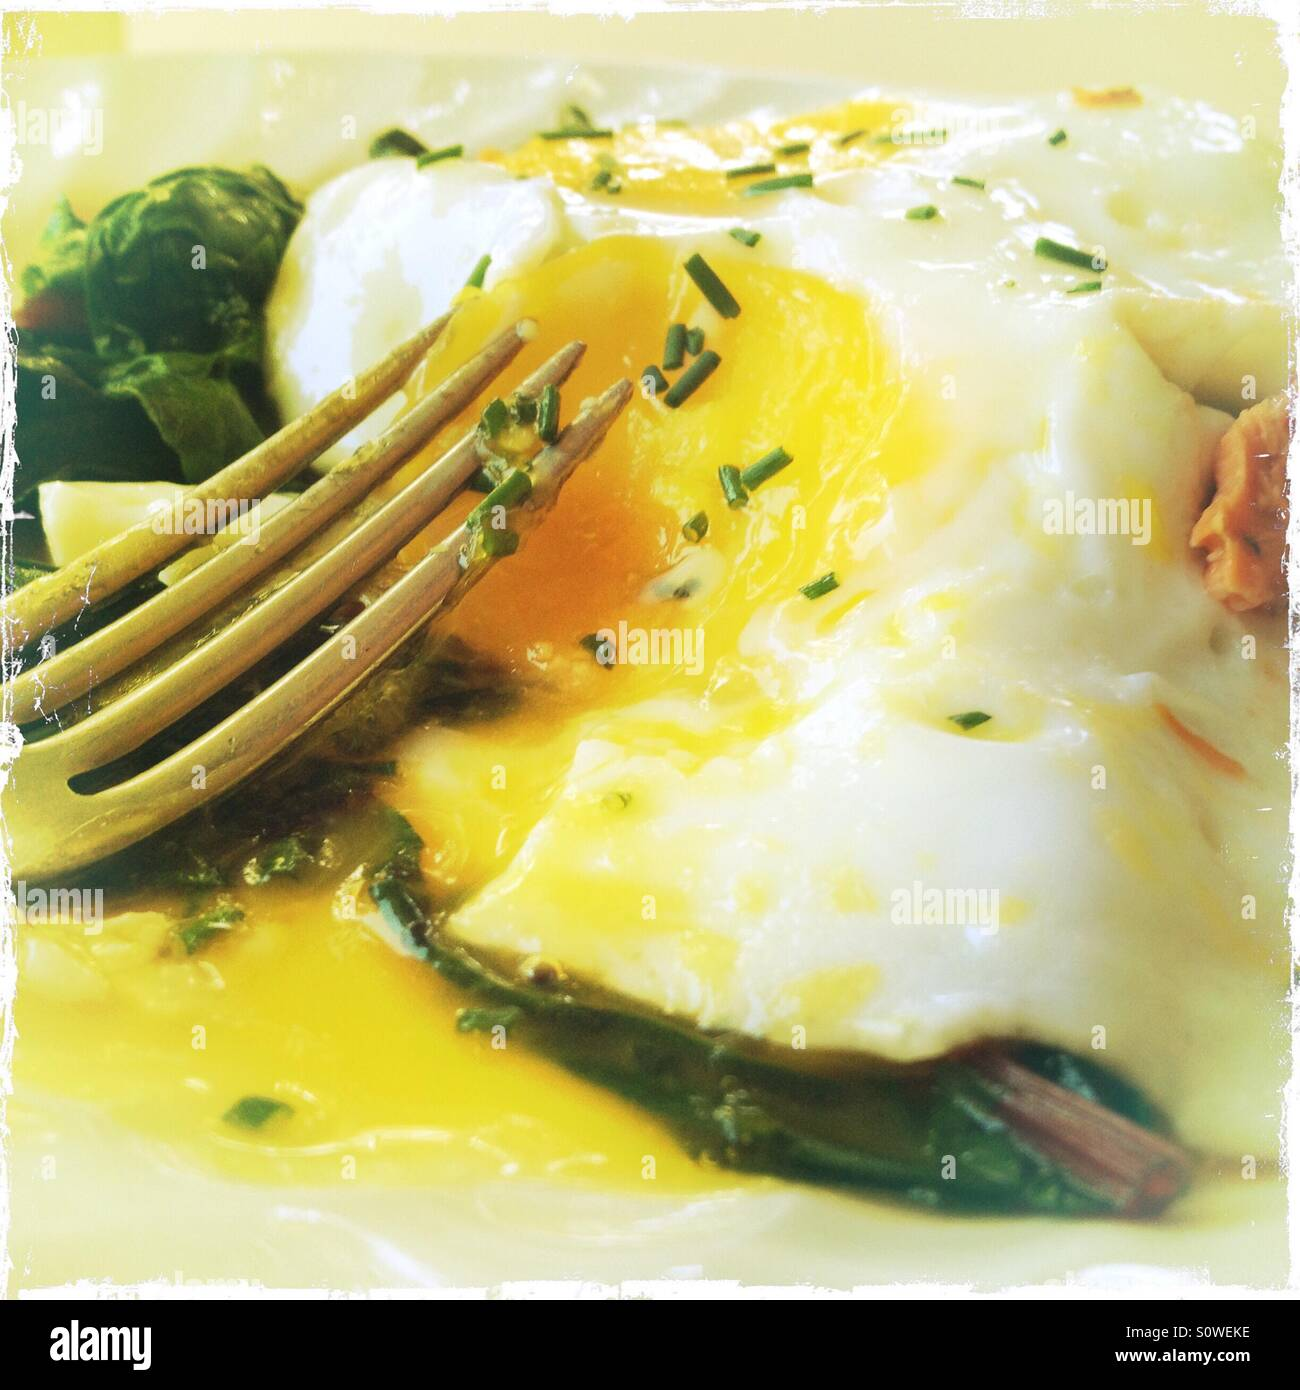 Fried egg on greens - Stock Image